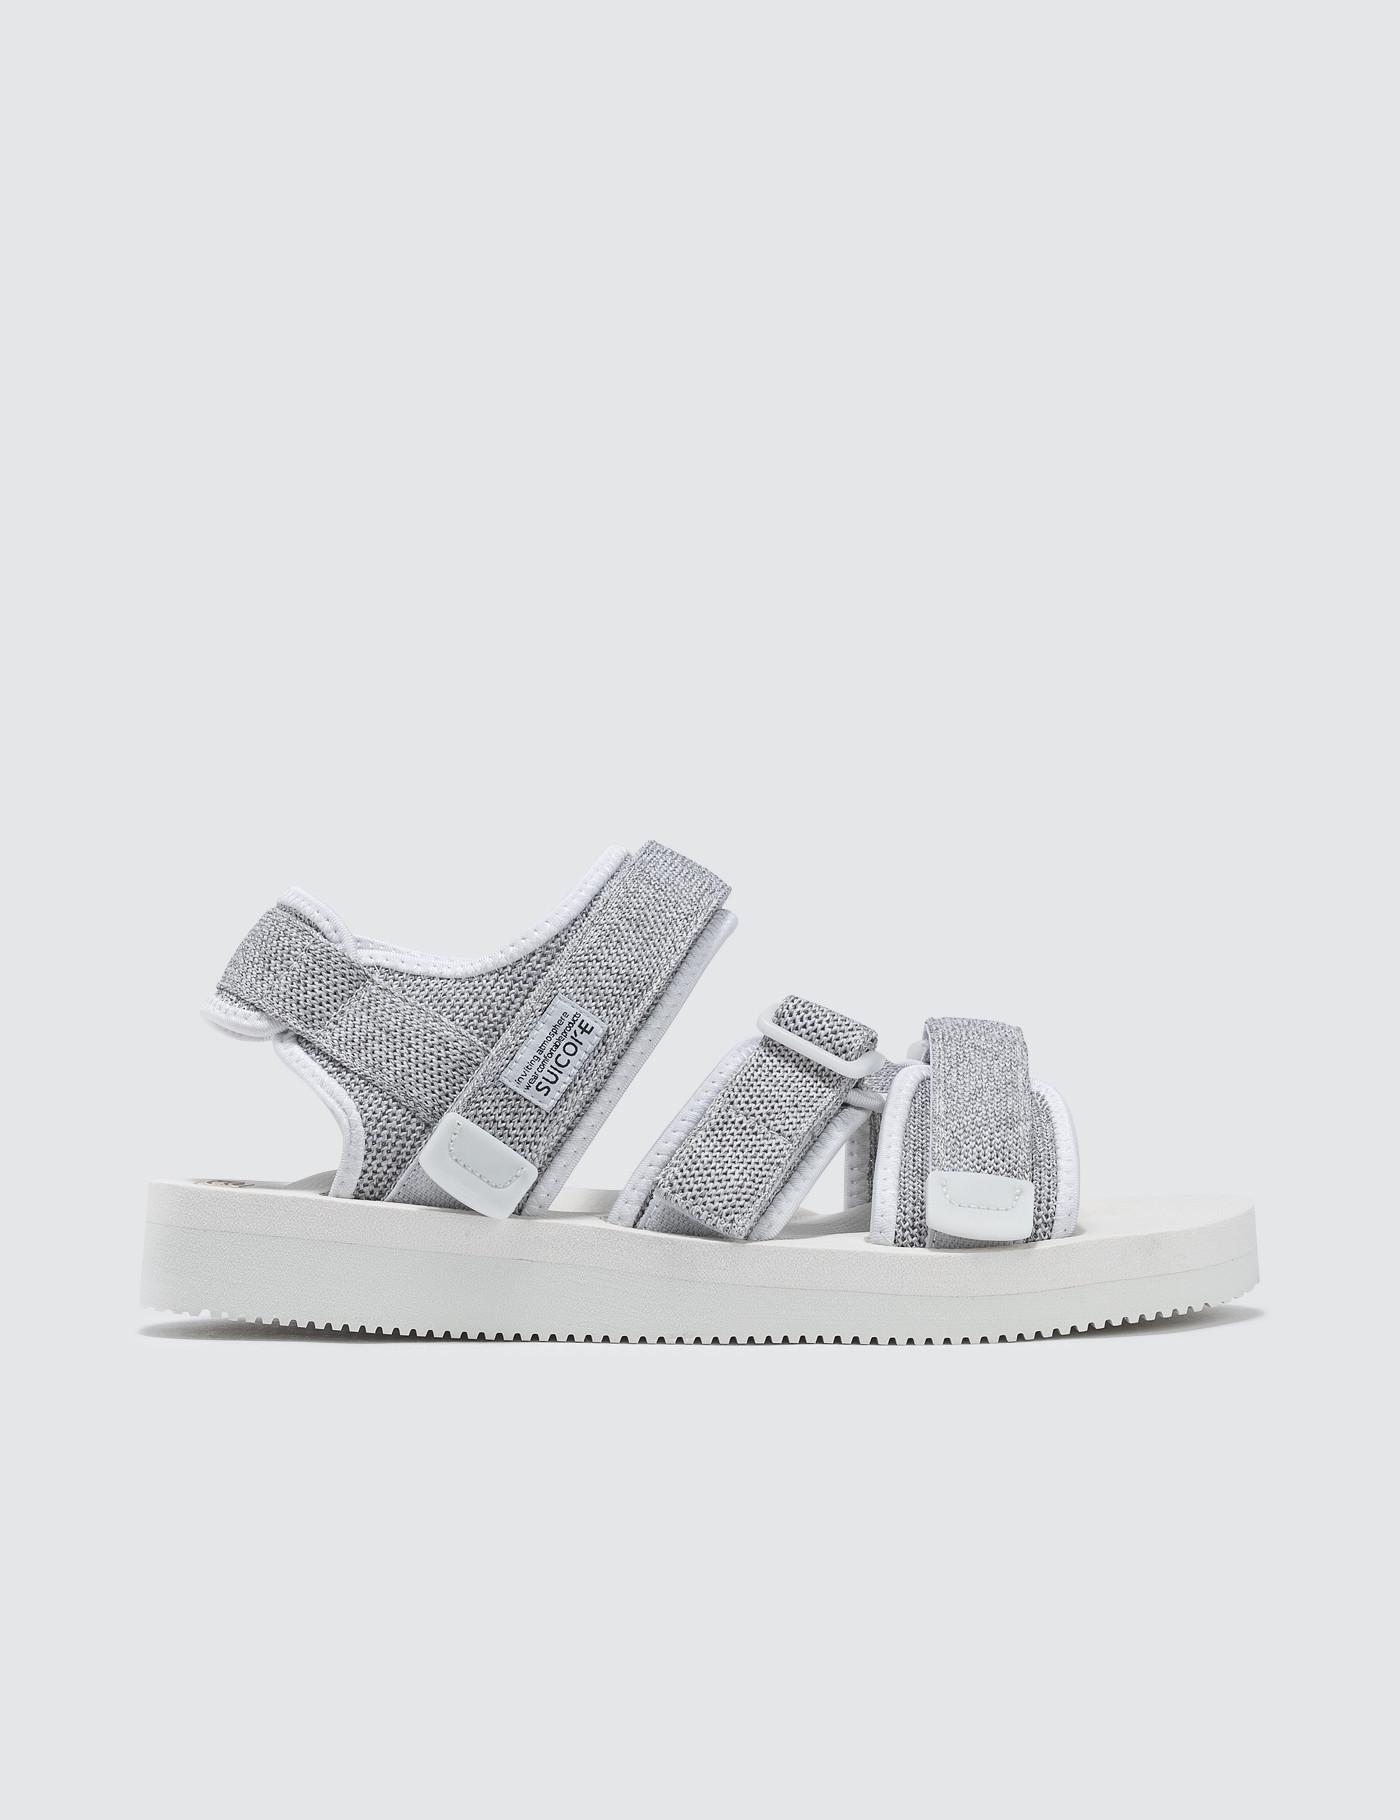 e74f908ff0a Suicoke Kisee-vkn Sandals in White for Men - Lyst